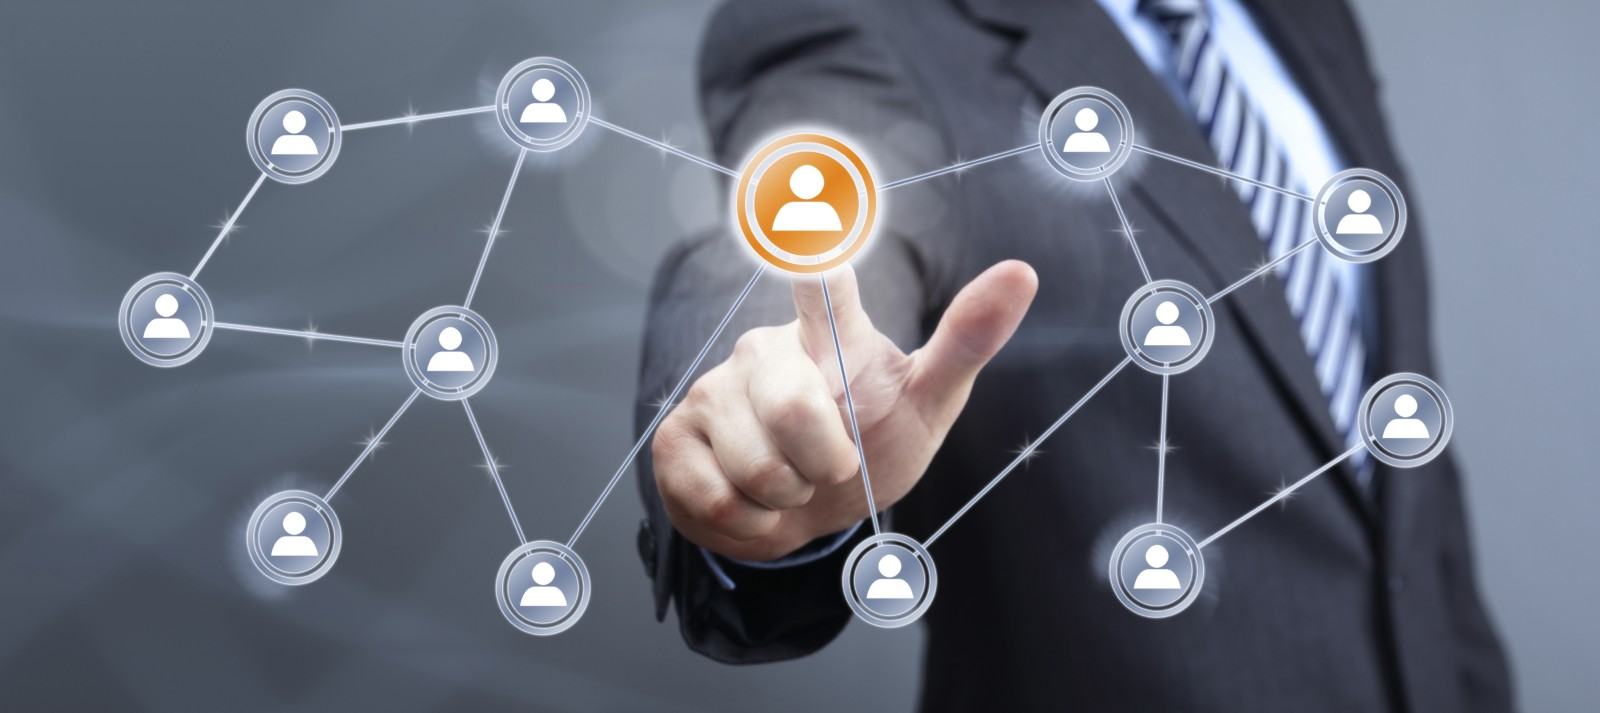 Whats The Future Of Multilevel Marketing In India